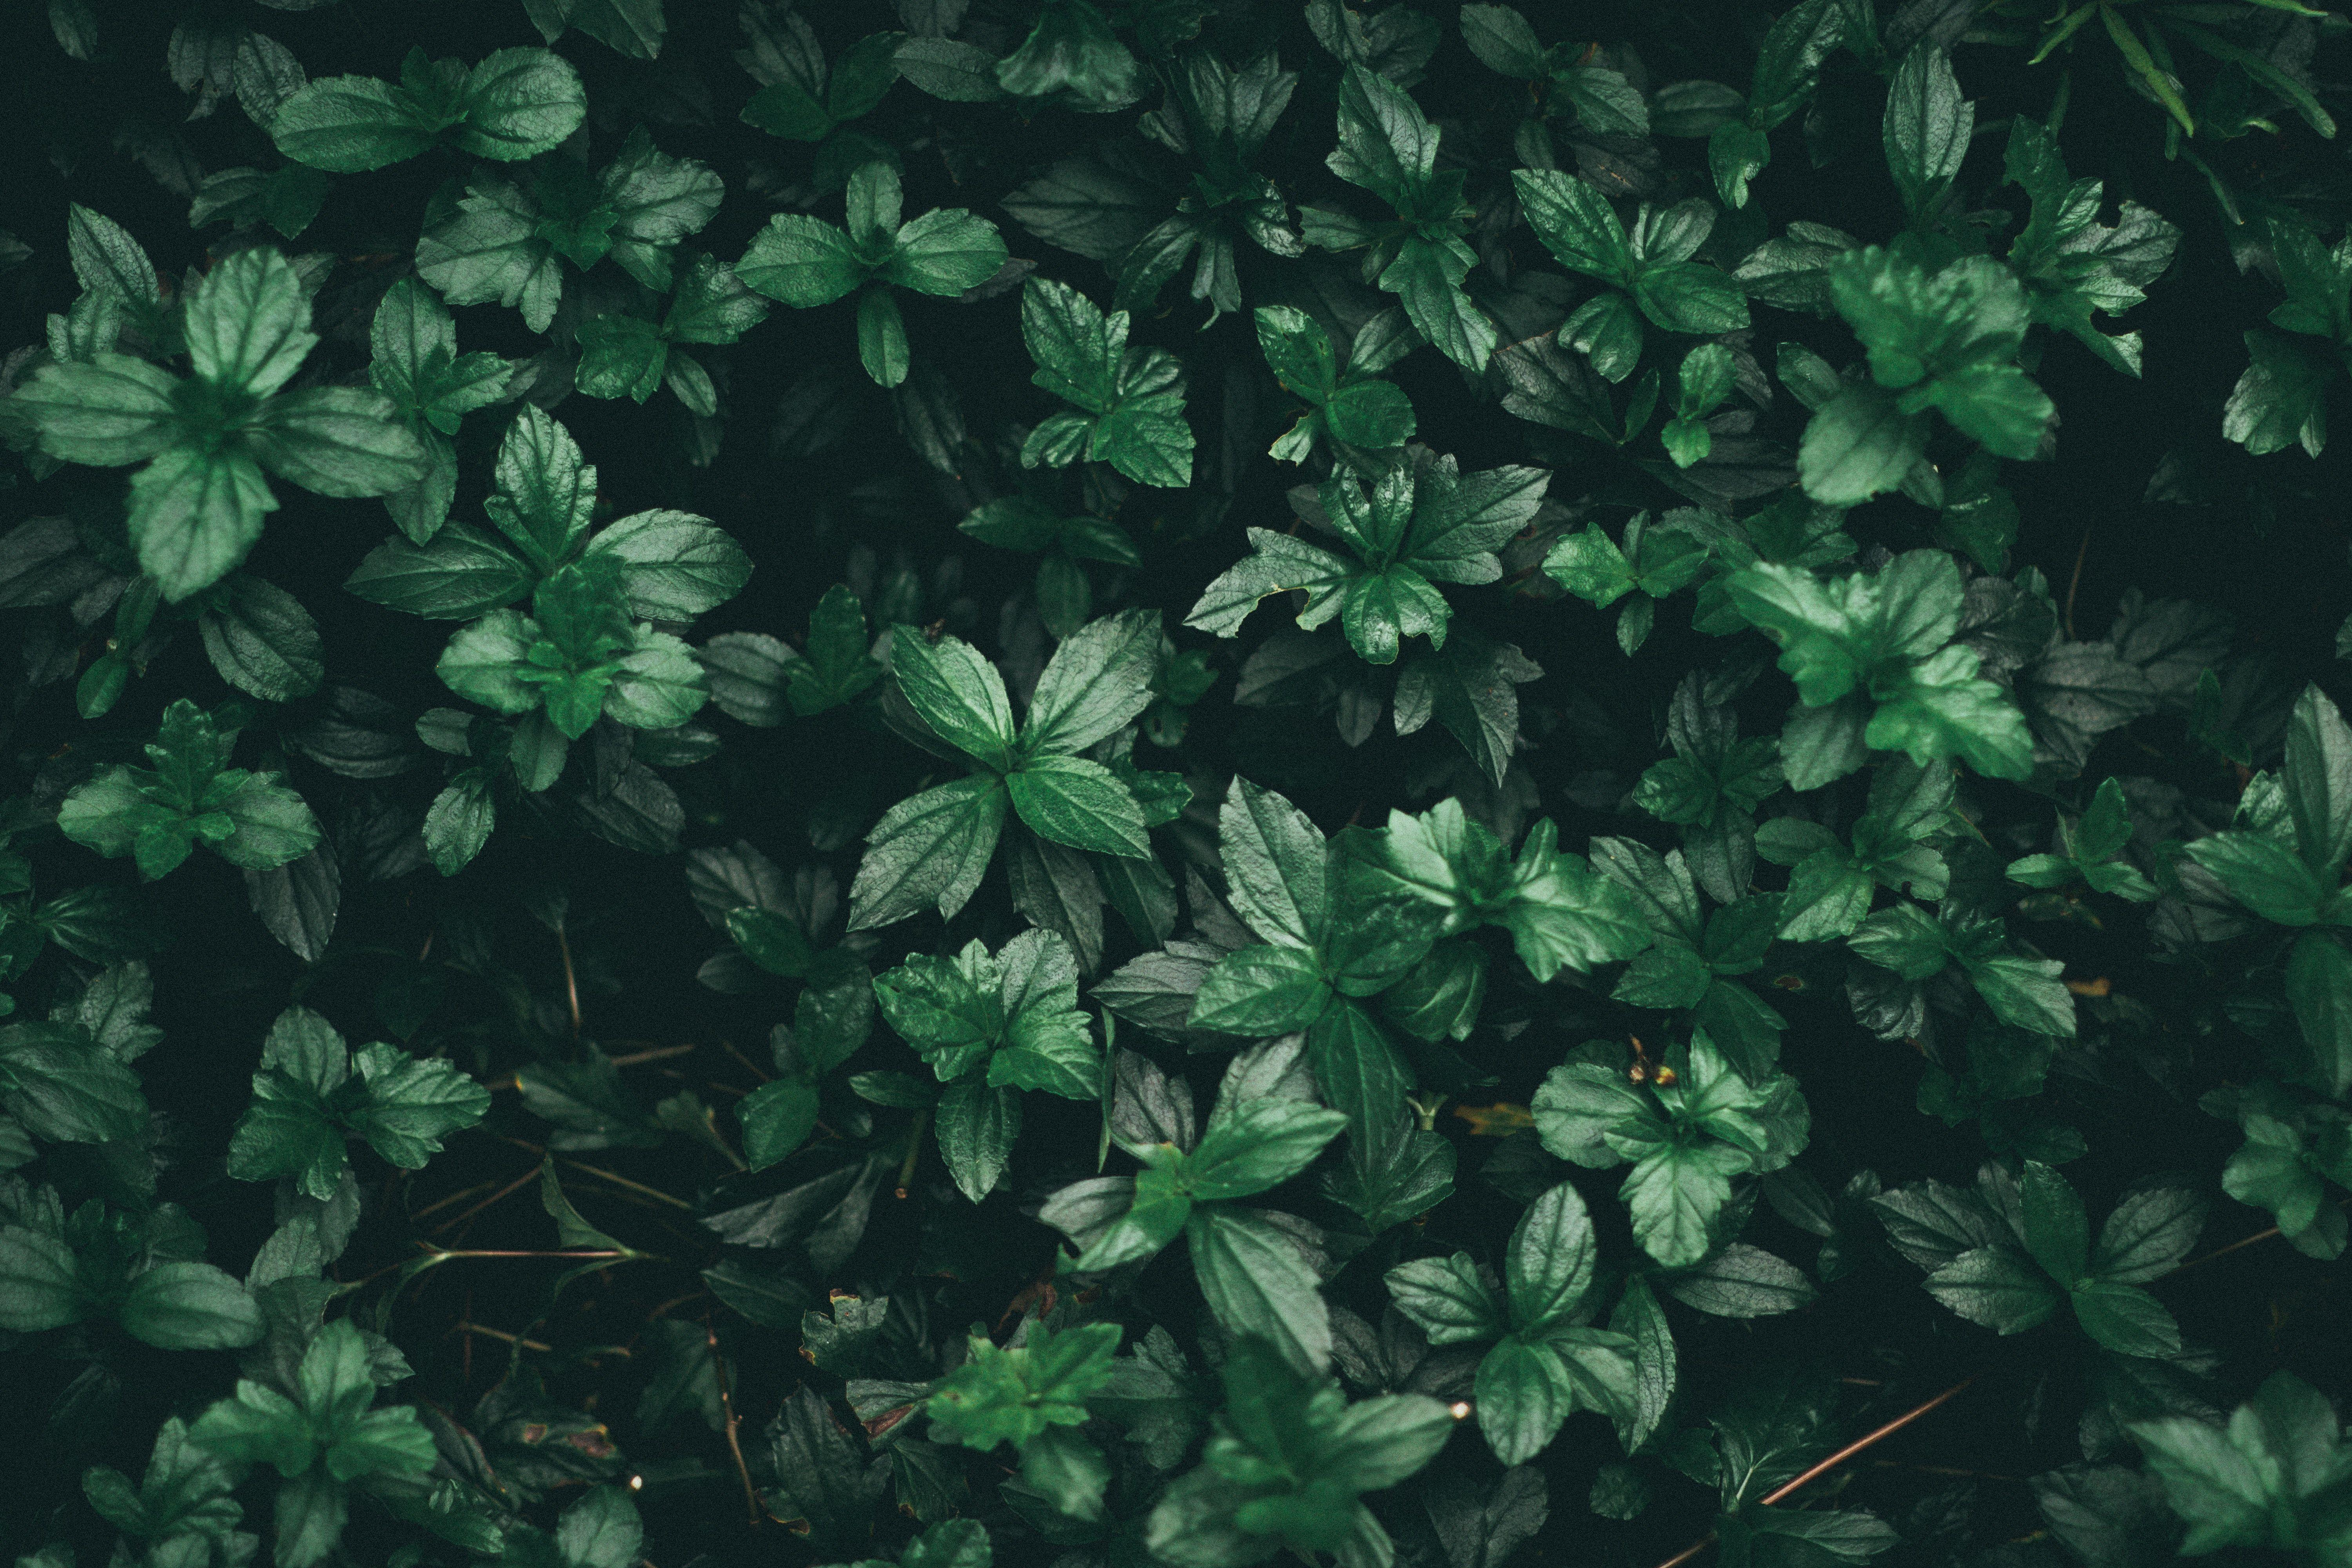 Green Aesthetic Computer Wallpapers Wallpaper Cave Find over 100+ of the best free tropical leaves images. wallpaper cave